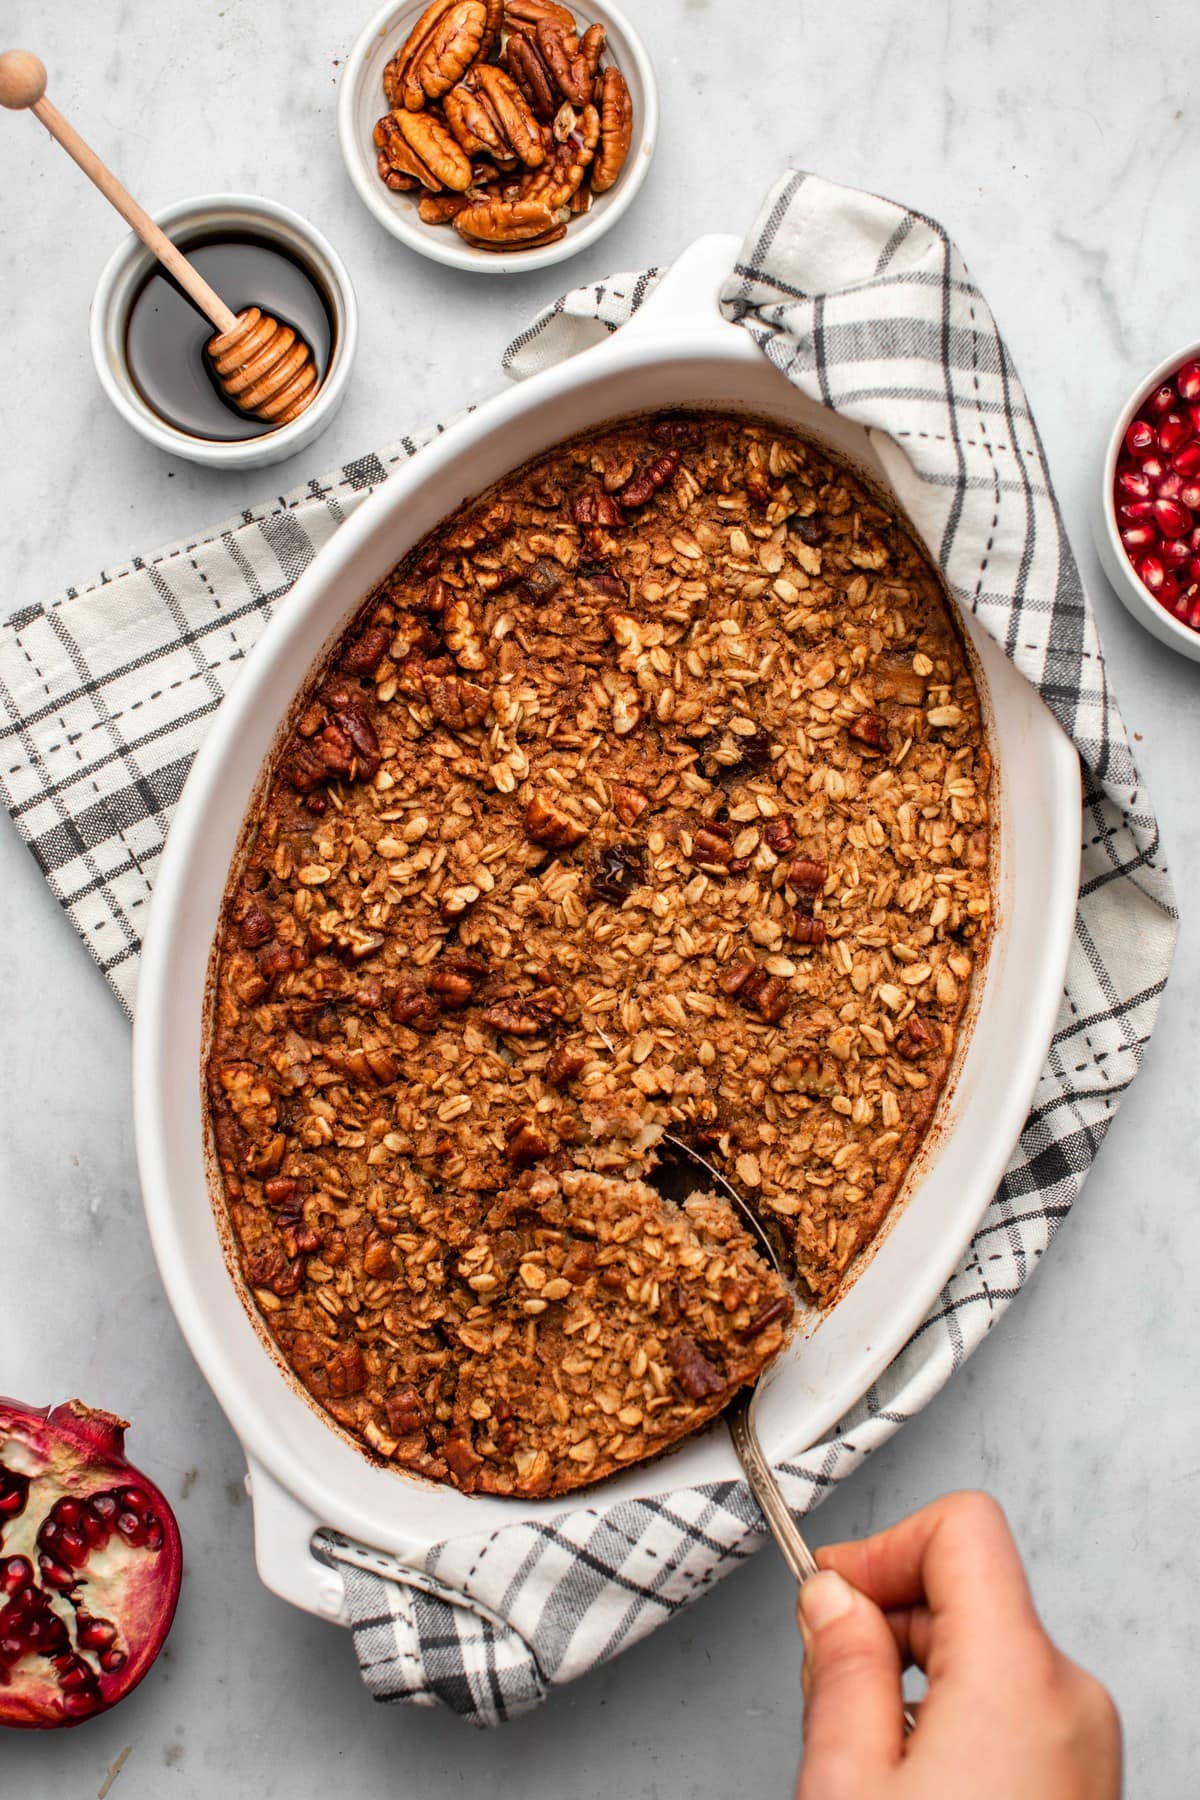 hand scooping out baked vegan maple pecan oatmeal on marble background